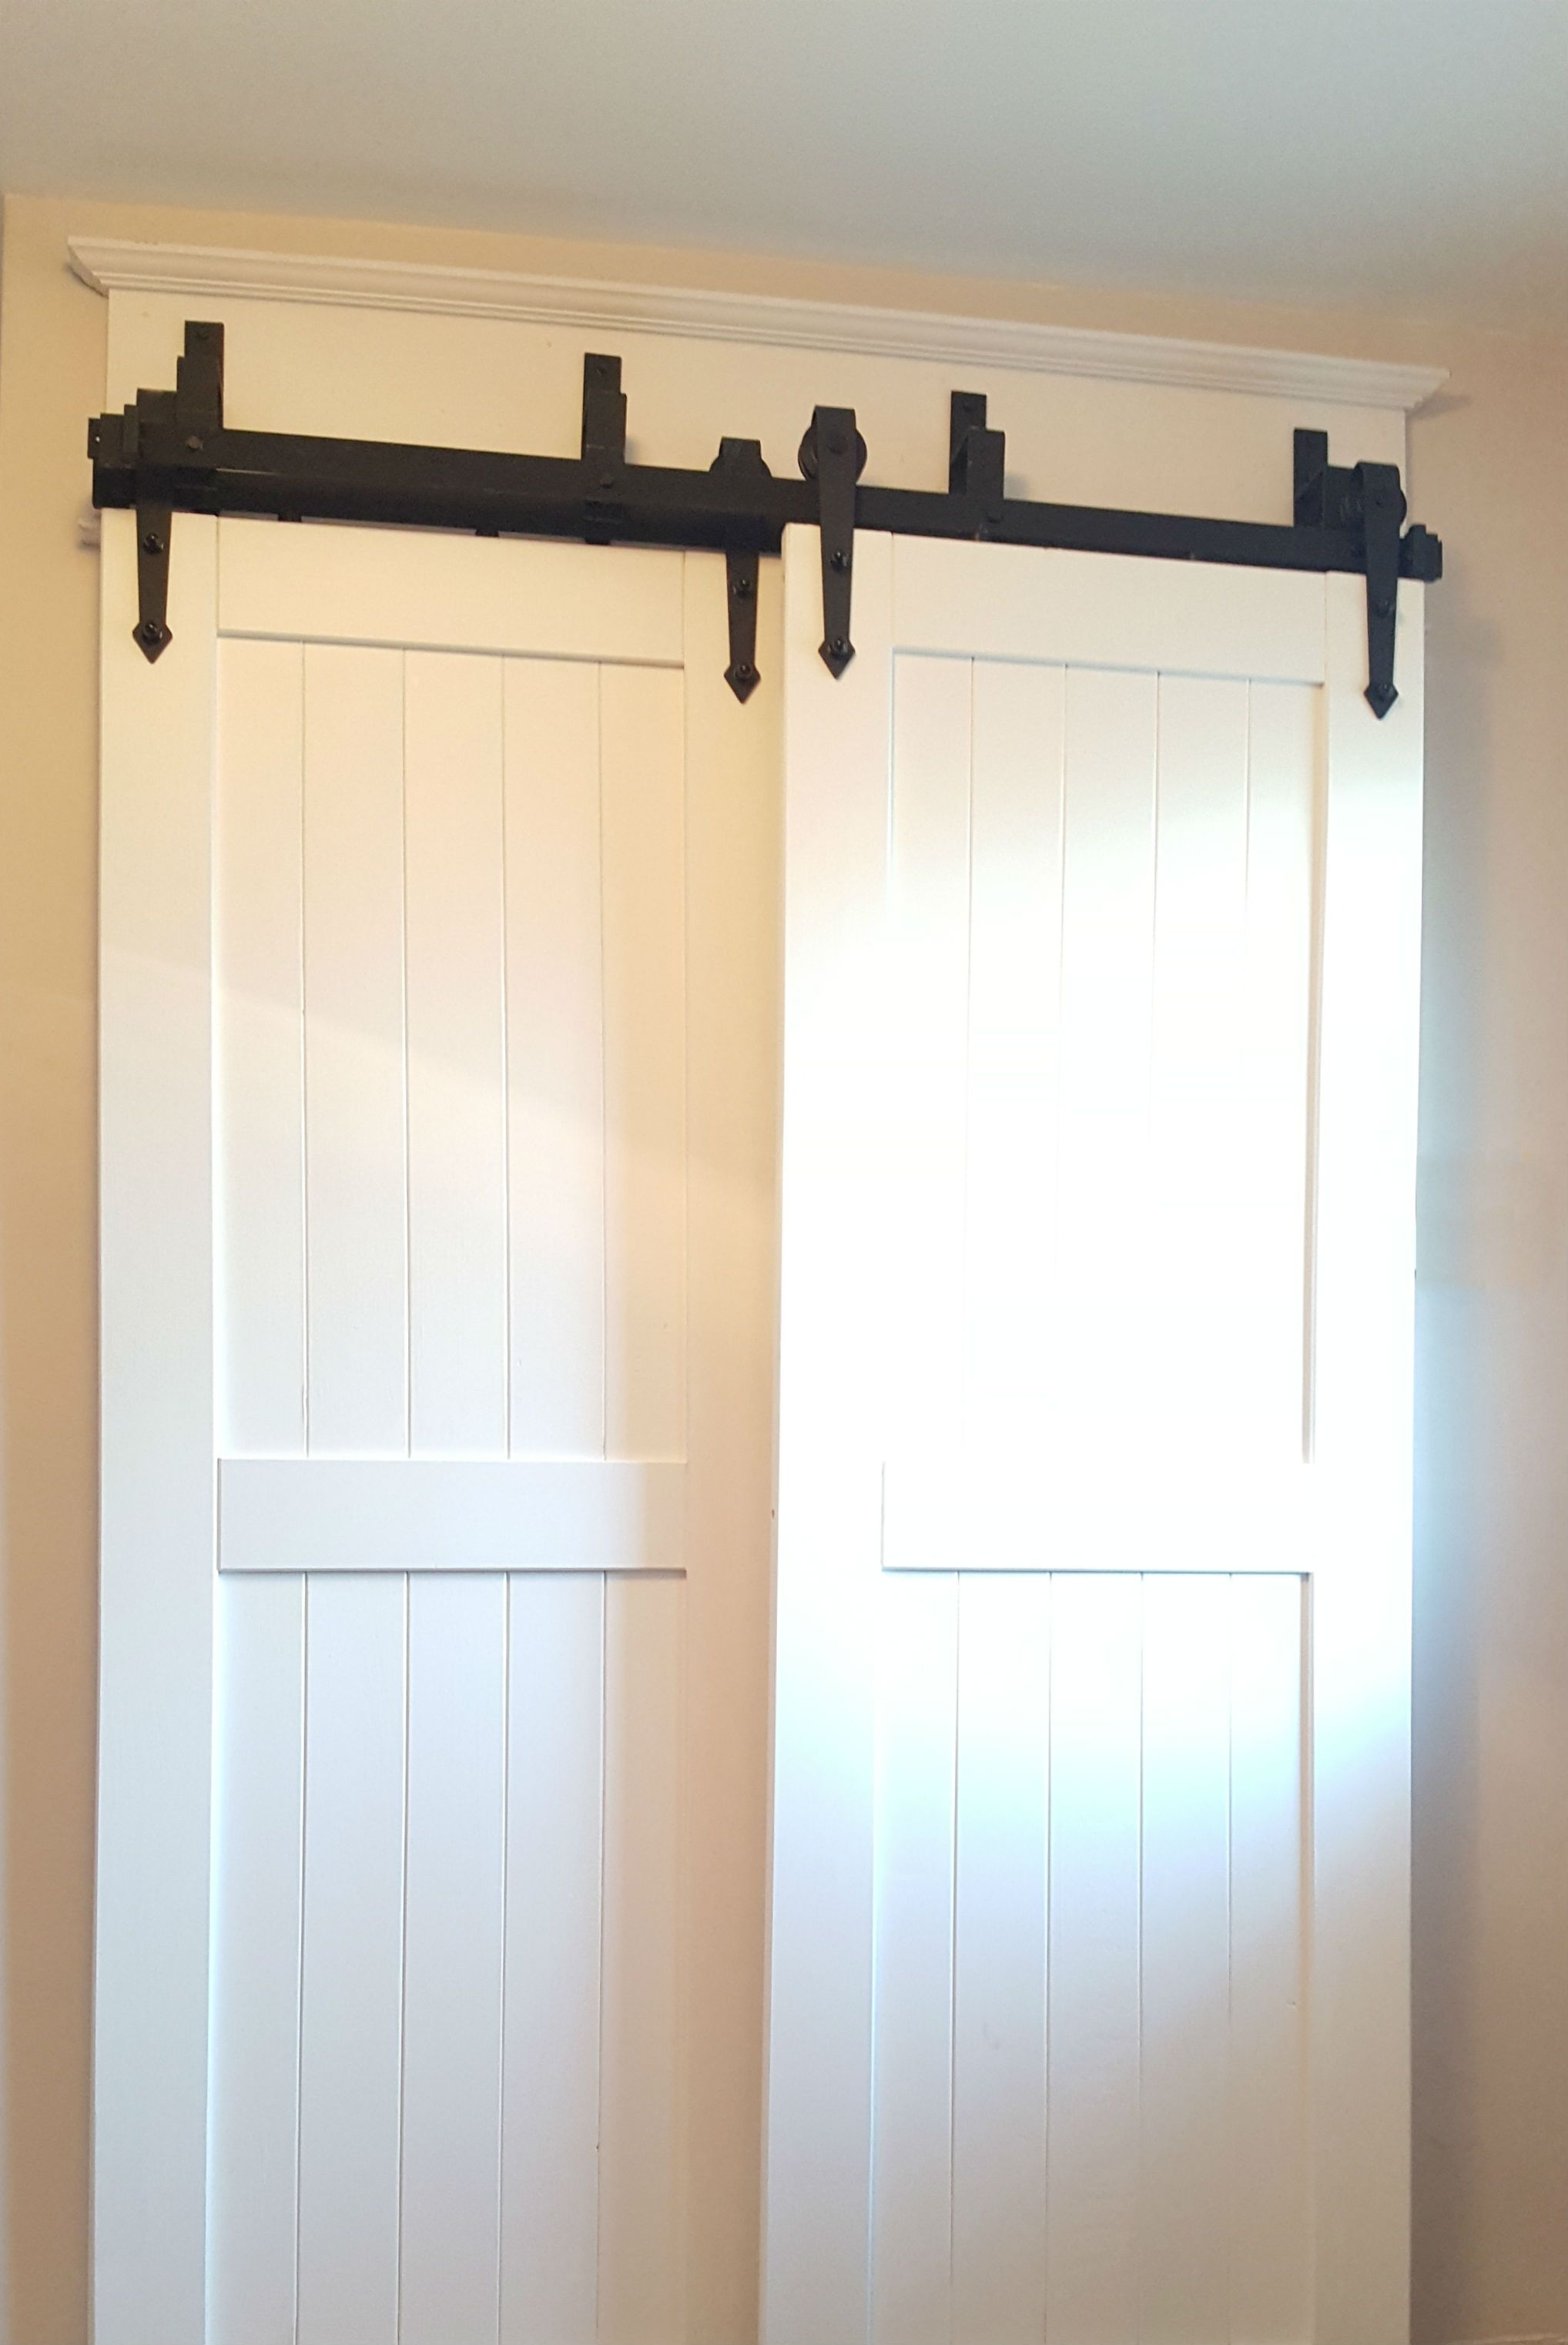 Bypass Barn Door Hardware Bypass Barn Door Hardware Easy To Install Canada Hanging